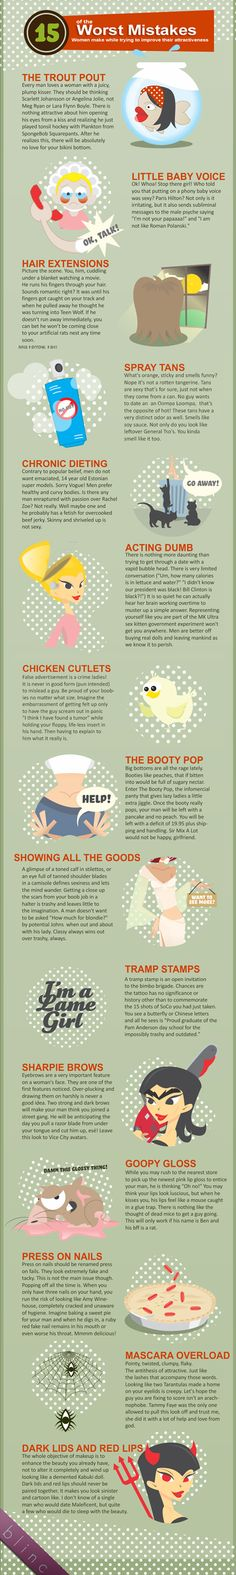 The smart way of avoiding common beauty mistakes (Infographic)